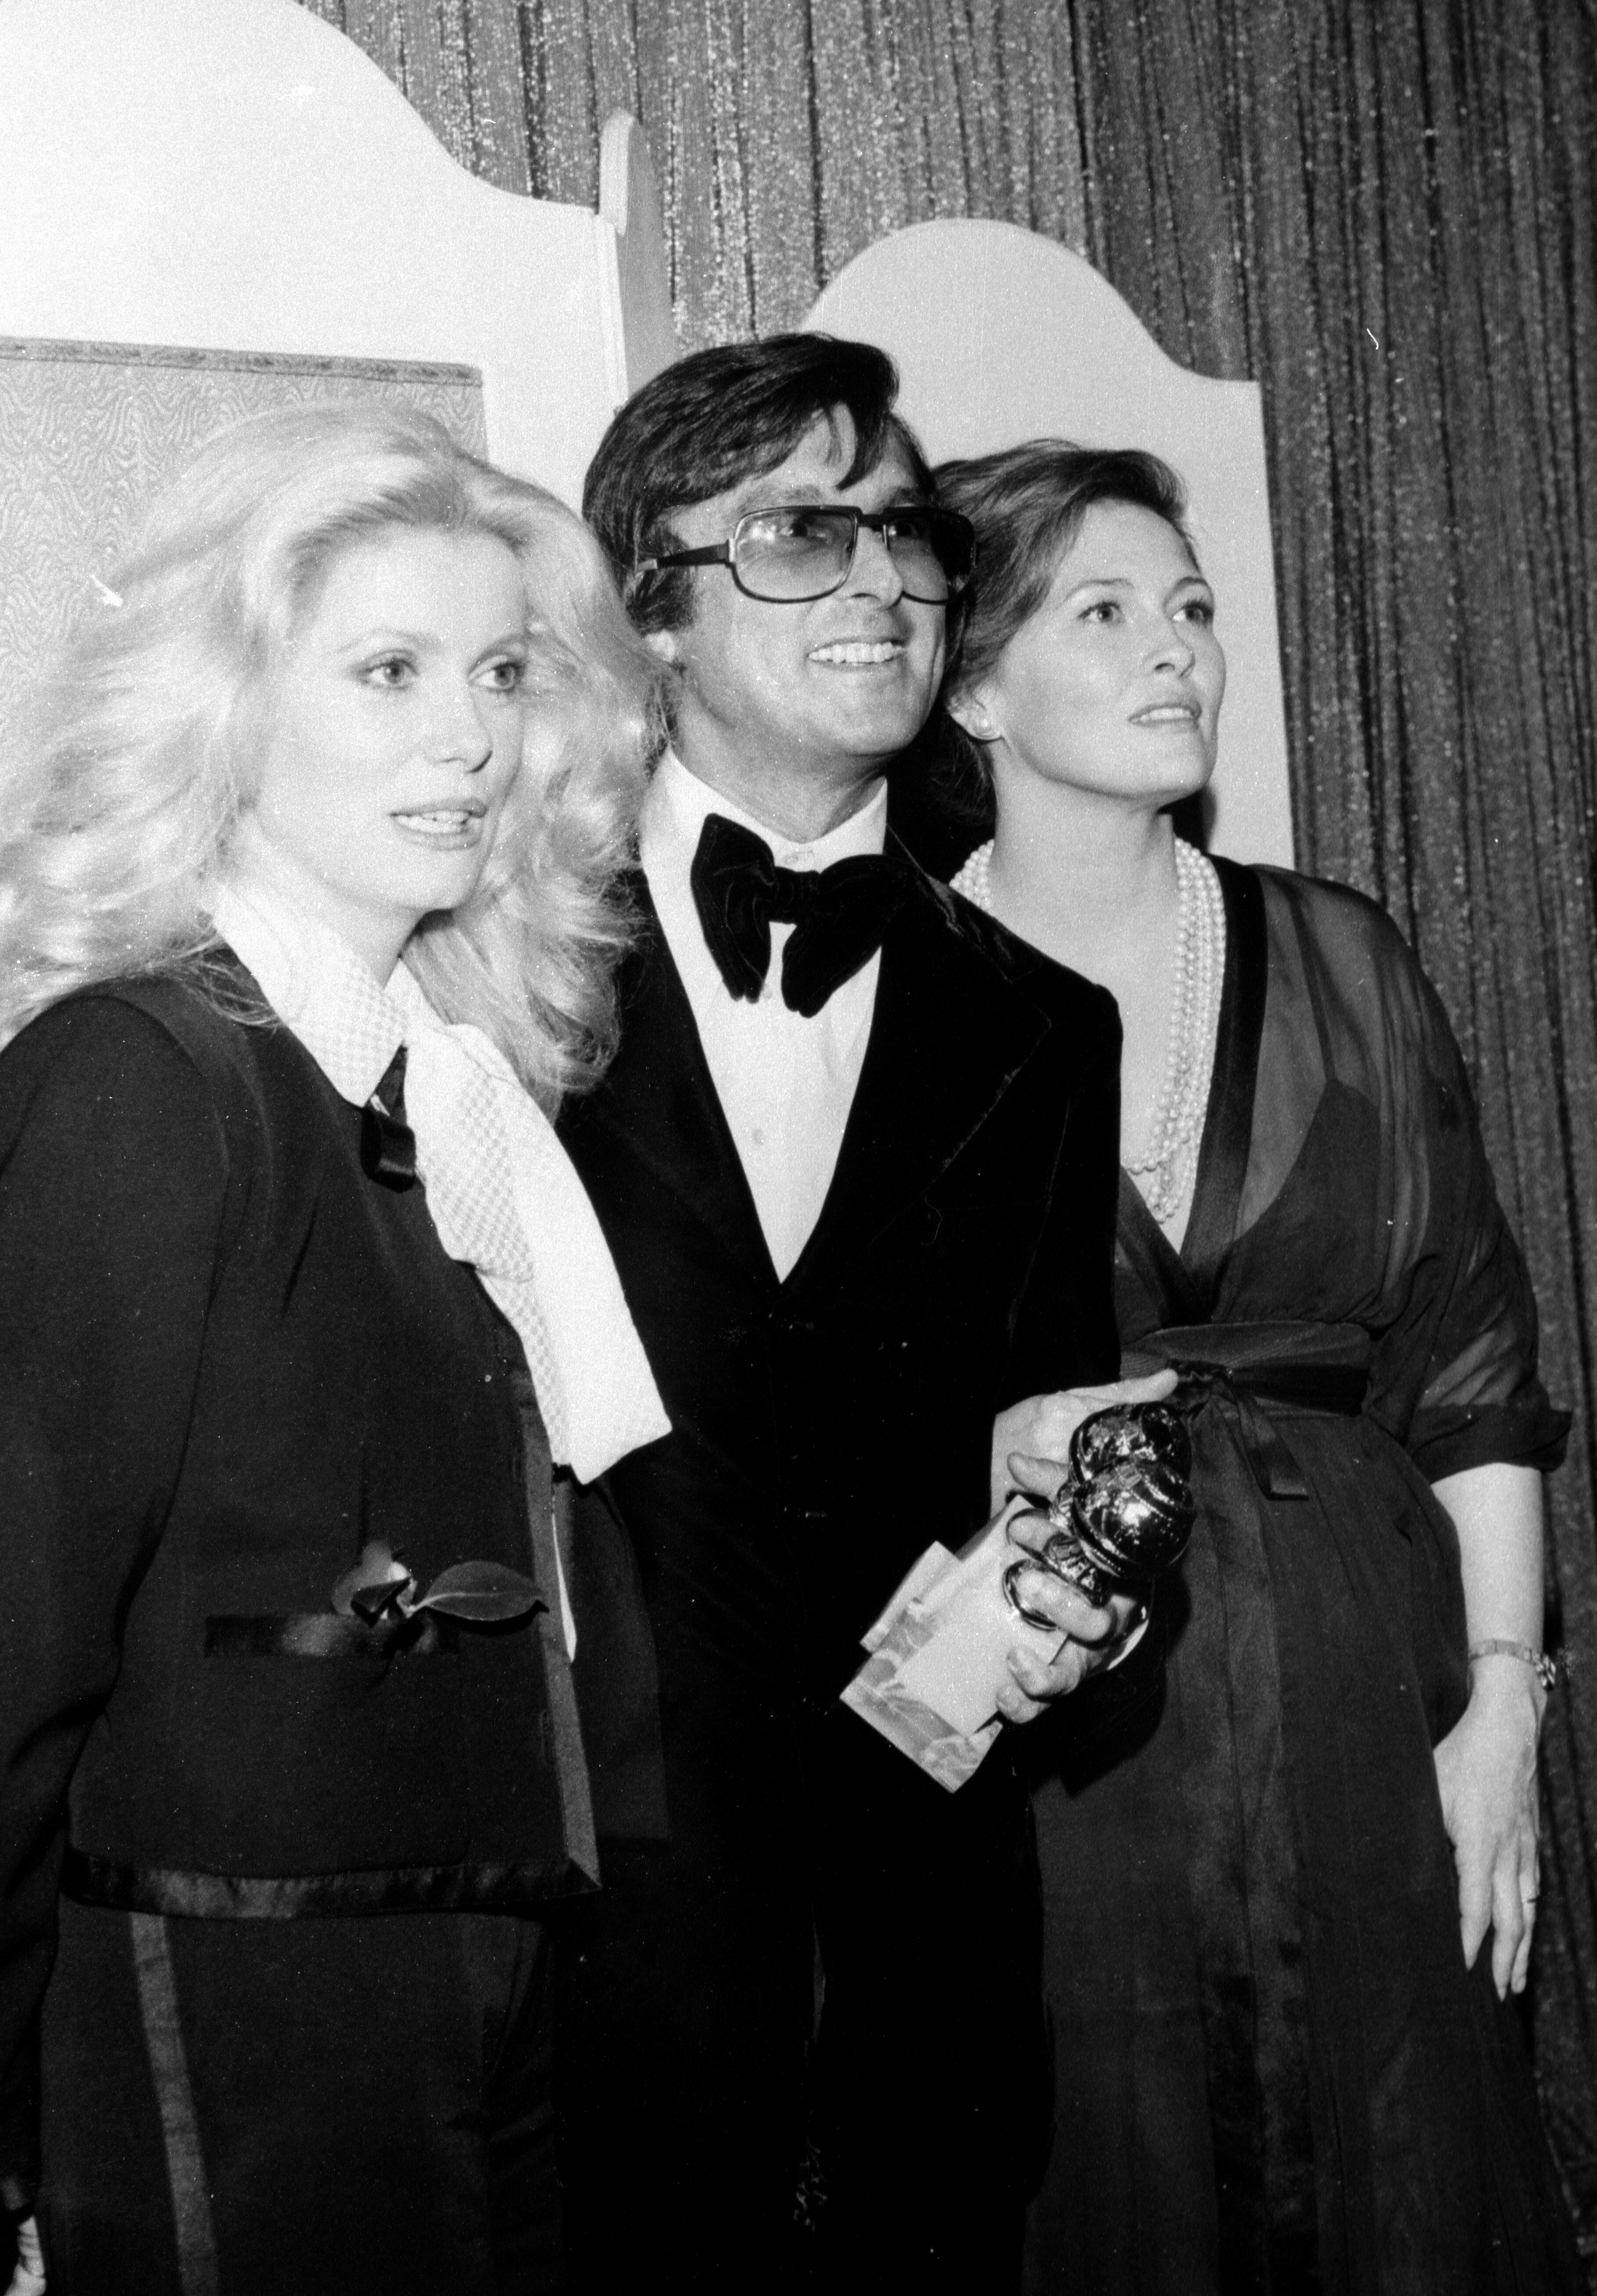 Robert Evans, Catherine Deneuve and Faye Dunaway at the 1975 Golden Globes